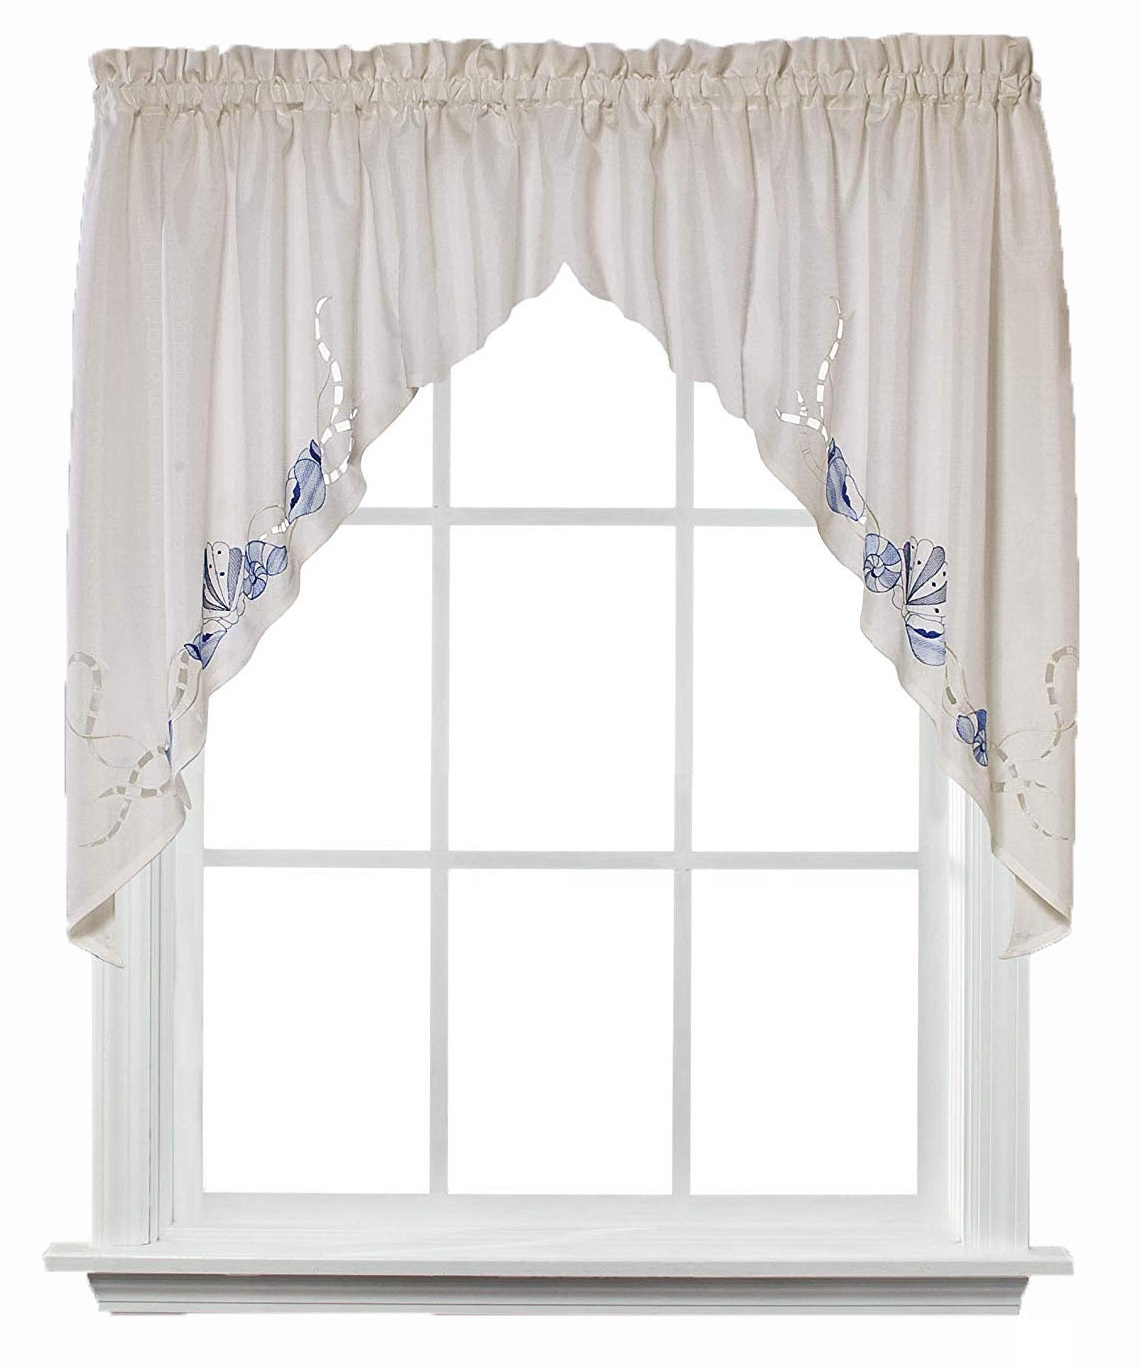 """Details About Saturday Knight Seabreeze Swag Curtain Valance 57"""" X 36"""" With Regard To Seabreeze 36 Inch Tier Pairs In Ocean (View 4 of 20)"""